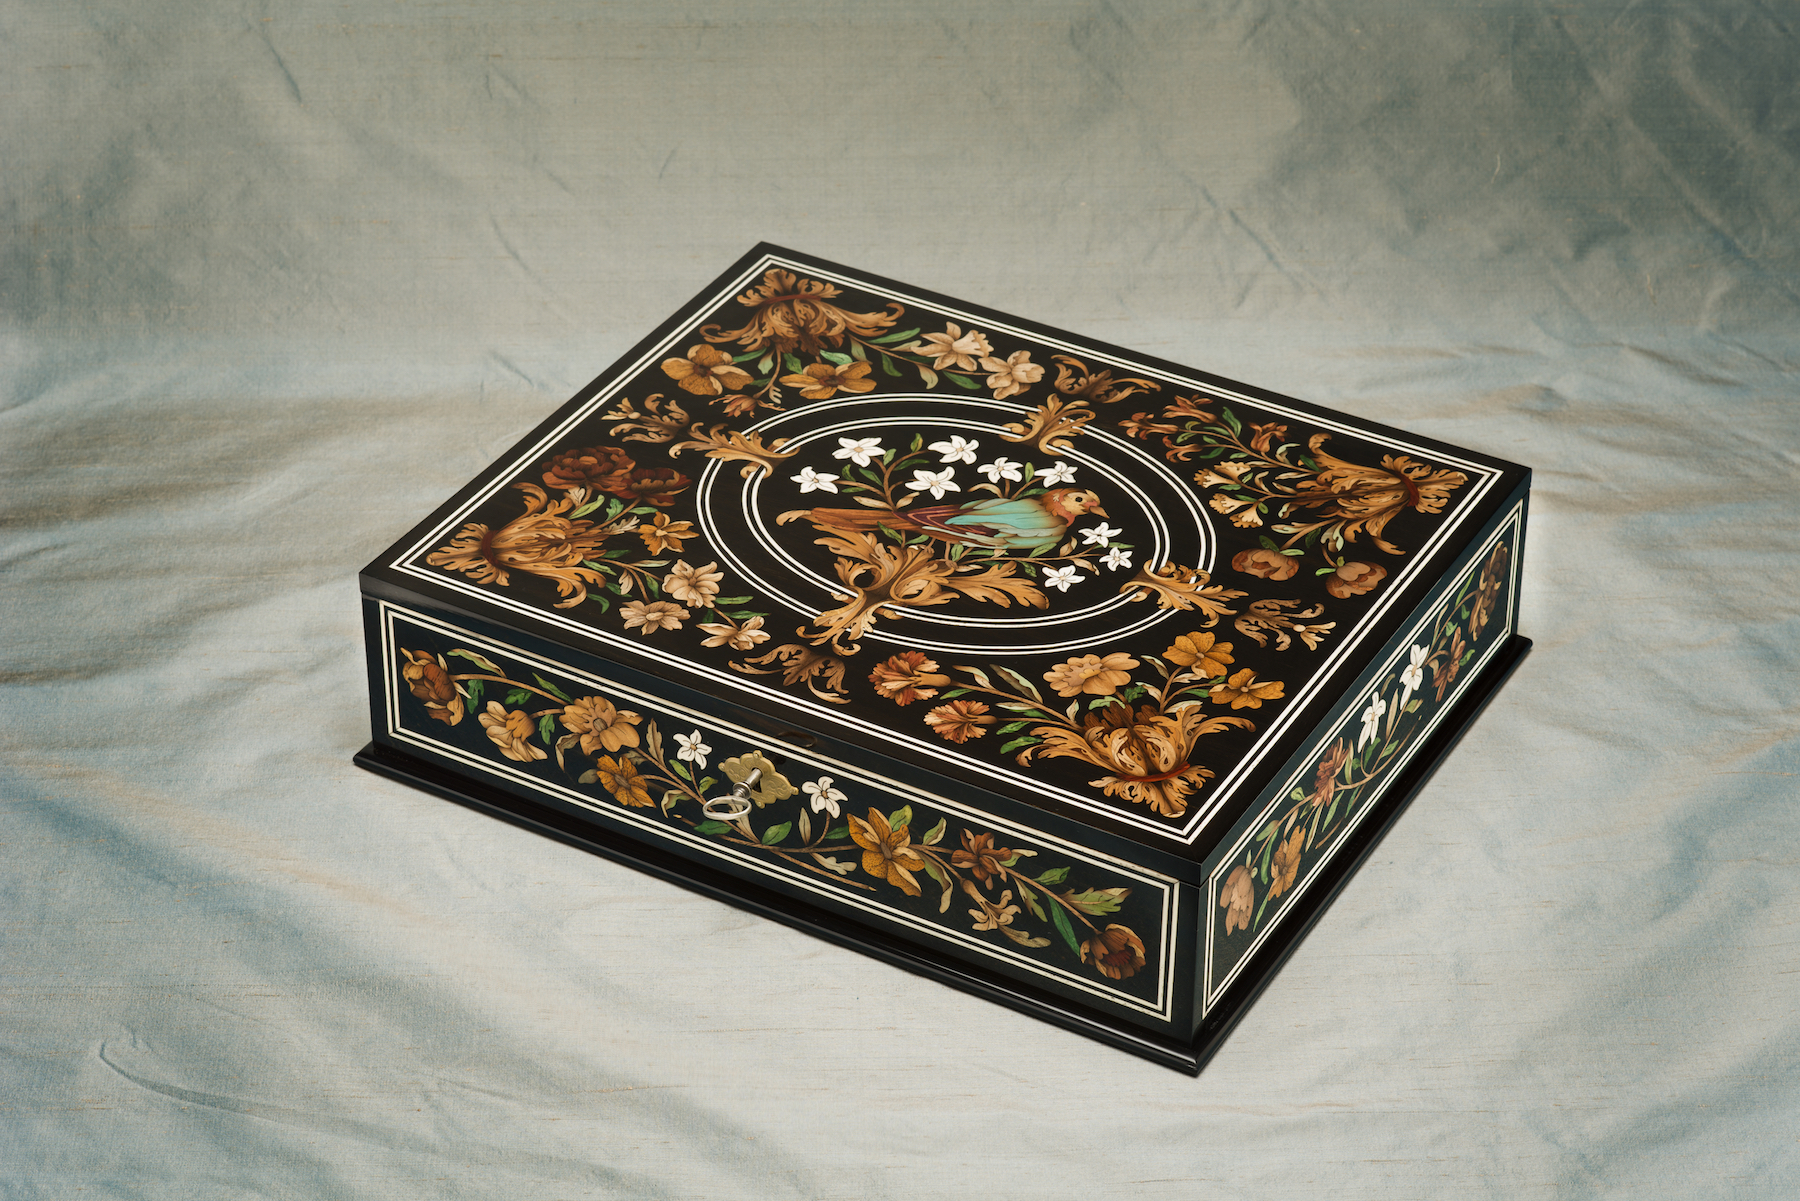 092 Treasure Box 2